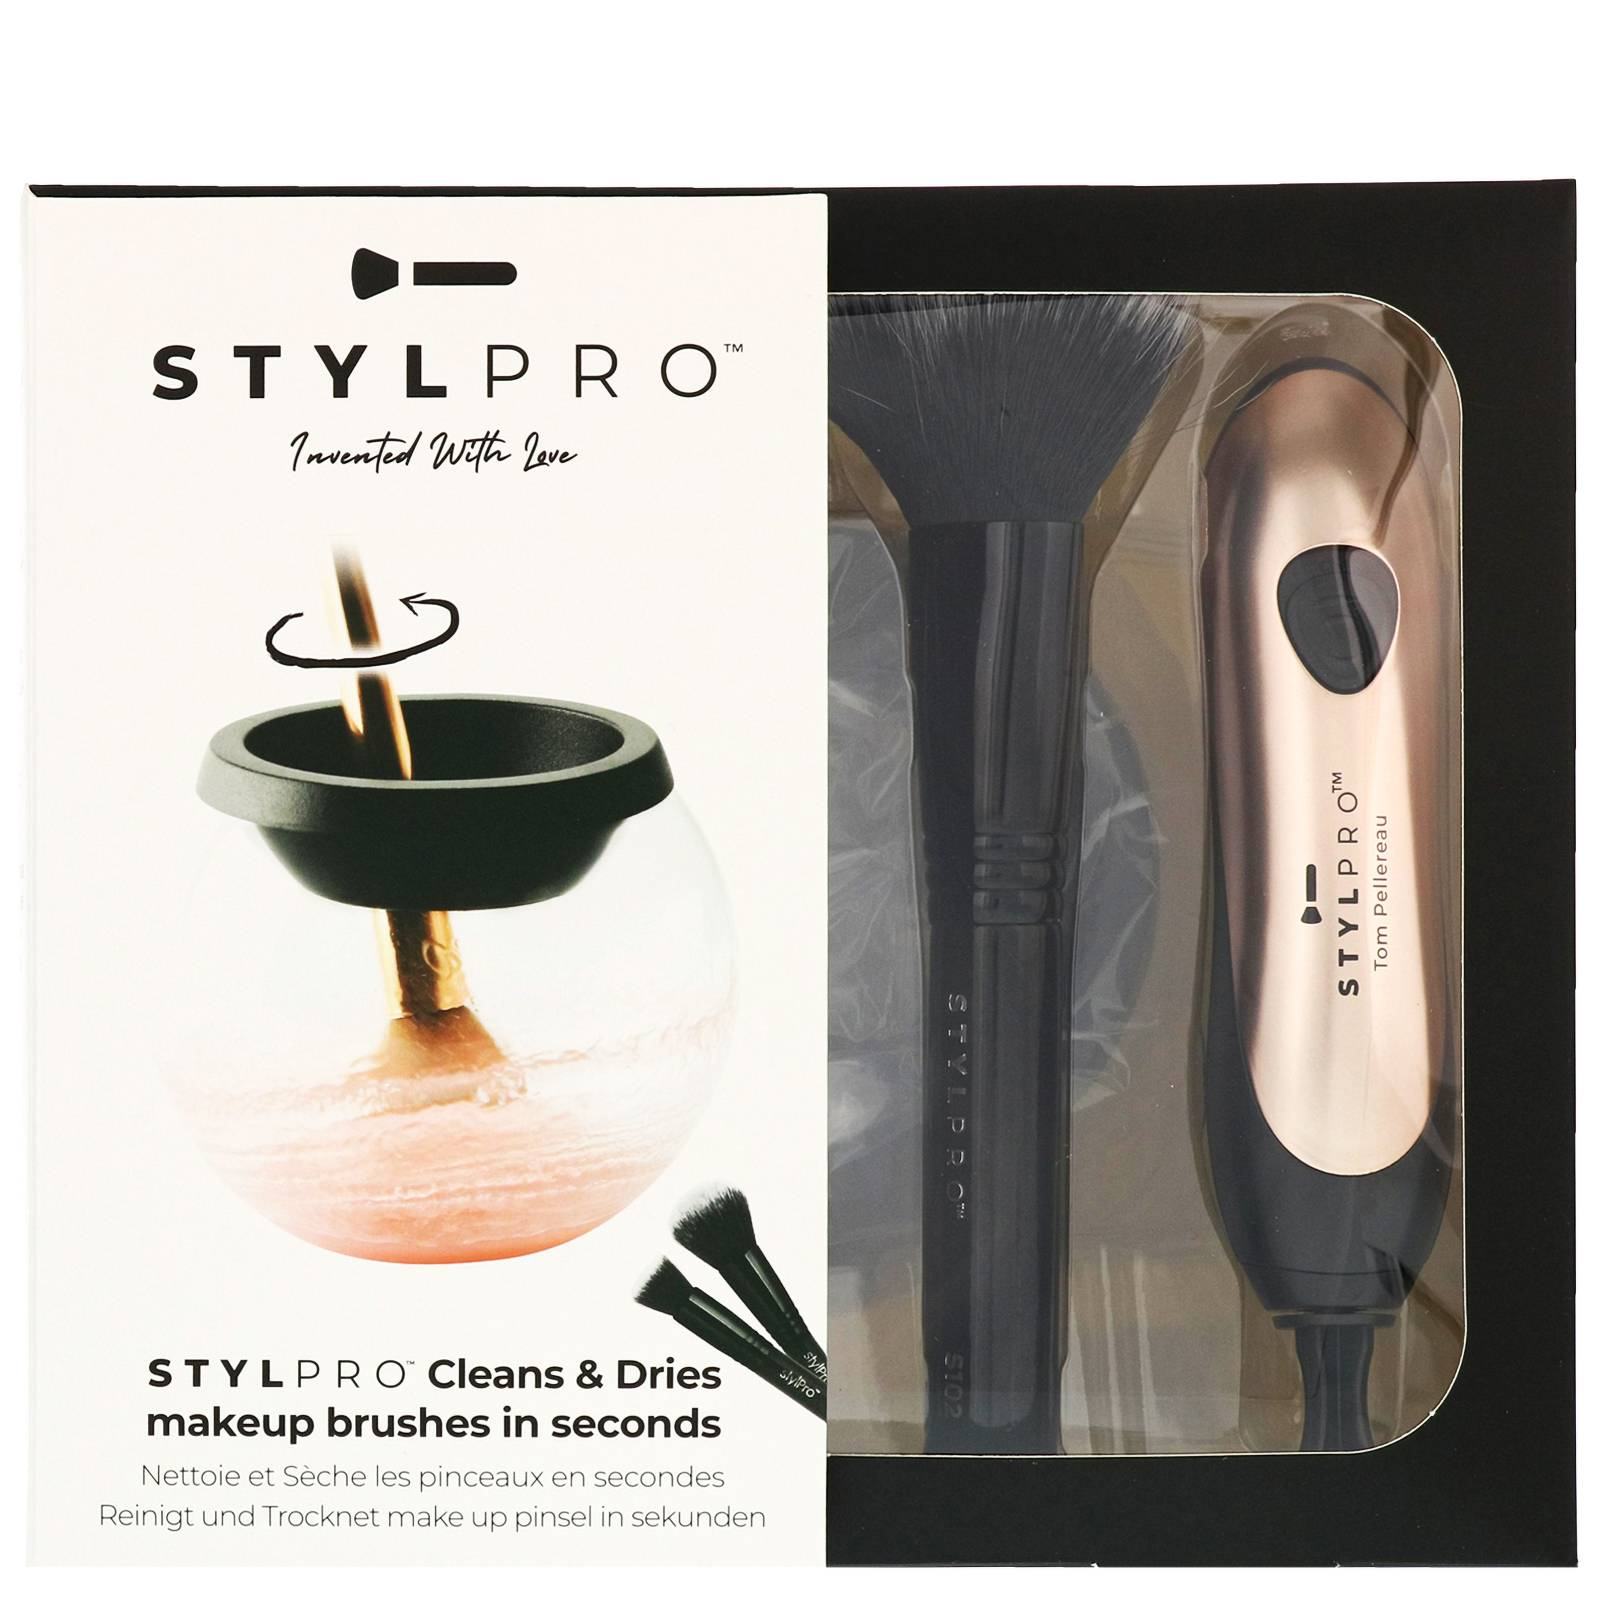 STYLPRO - Limited Edition Blush Makeup Brush Cleaner & Dryer & Cleanser 150ml for Women